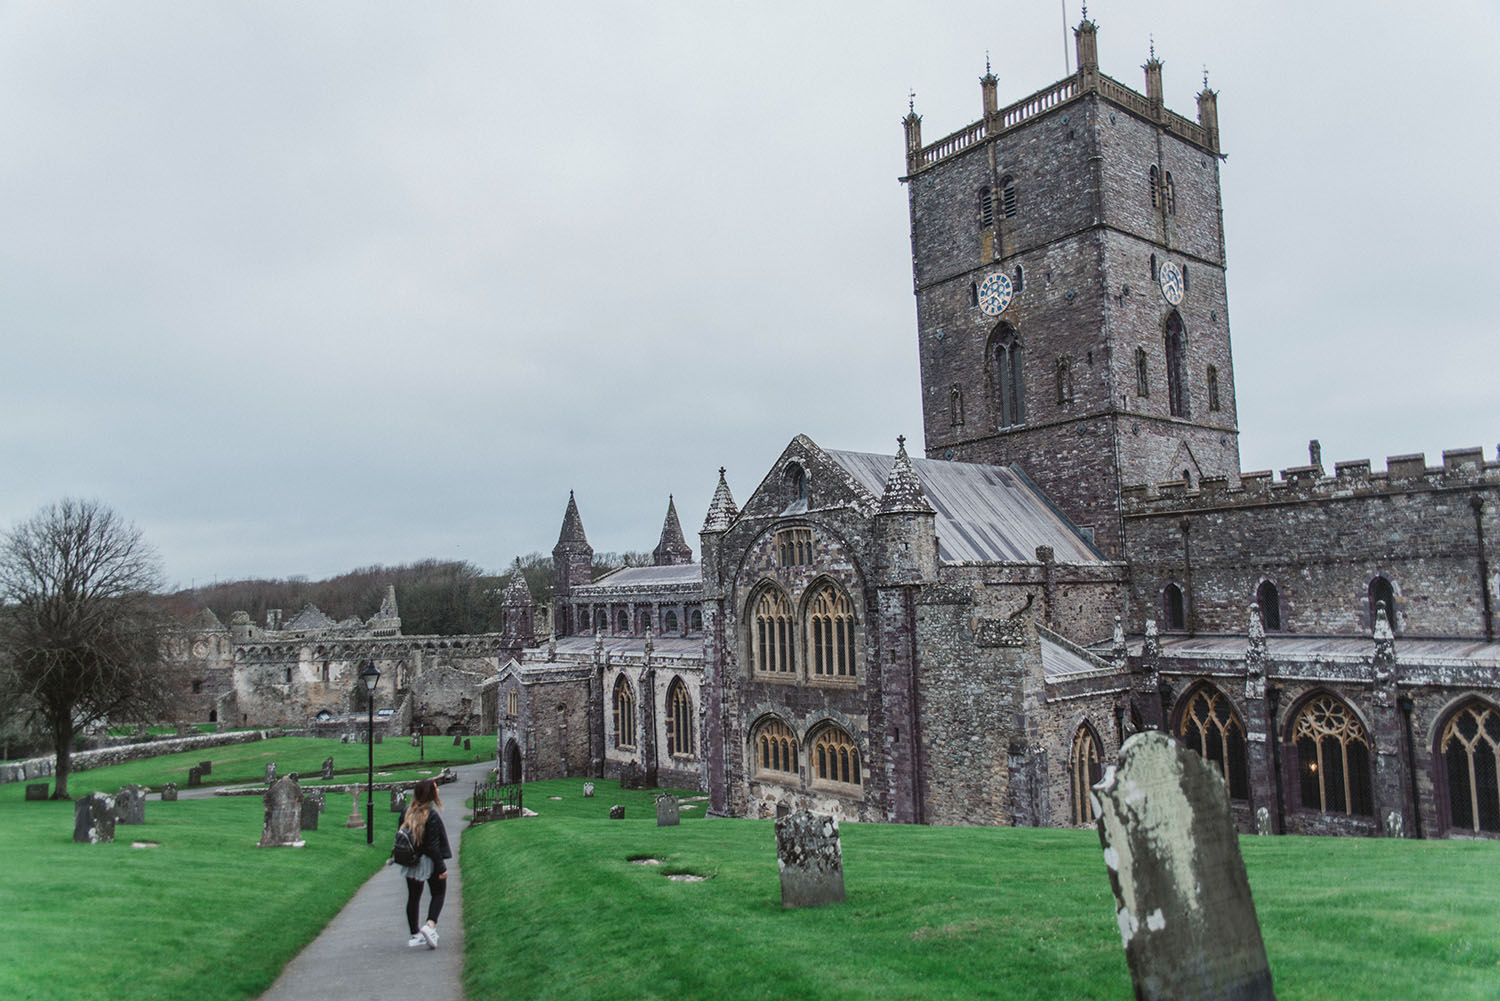 St David's Cathedral in Wales